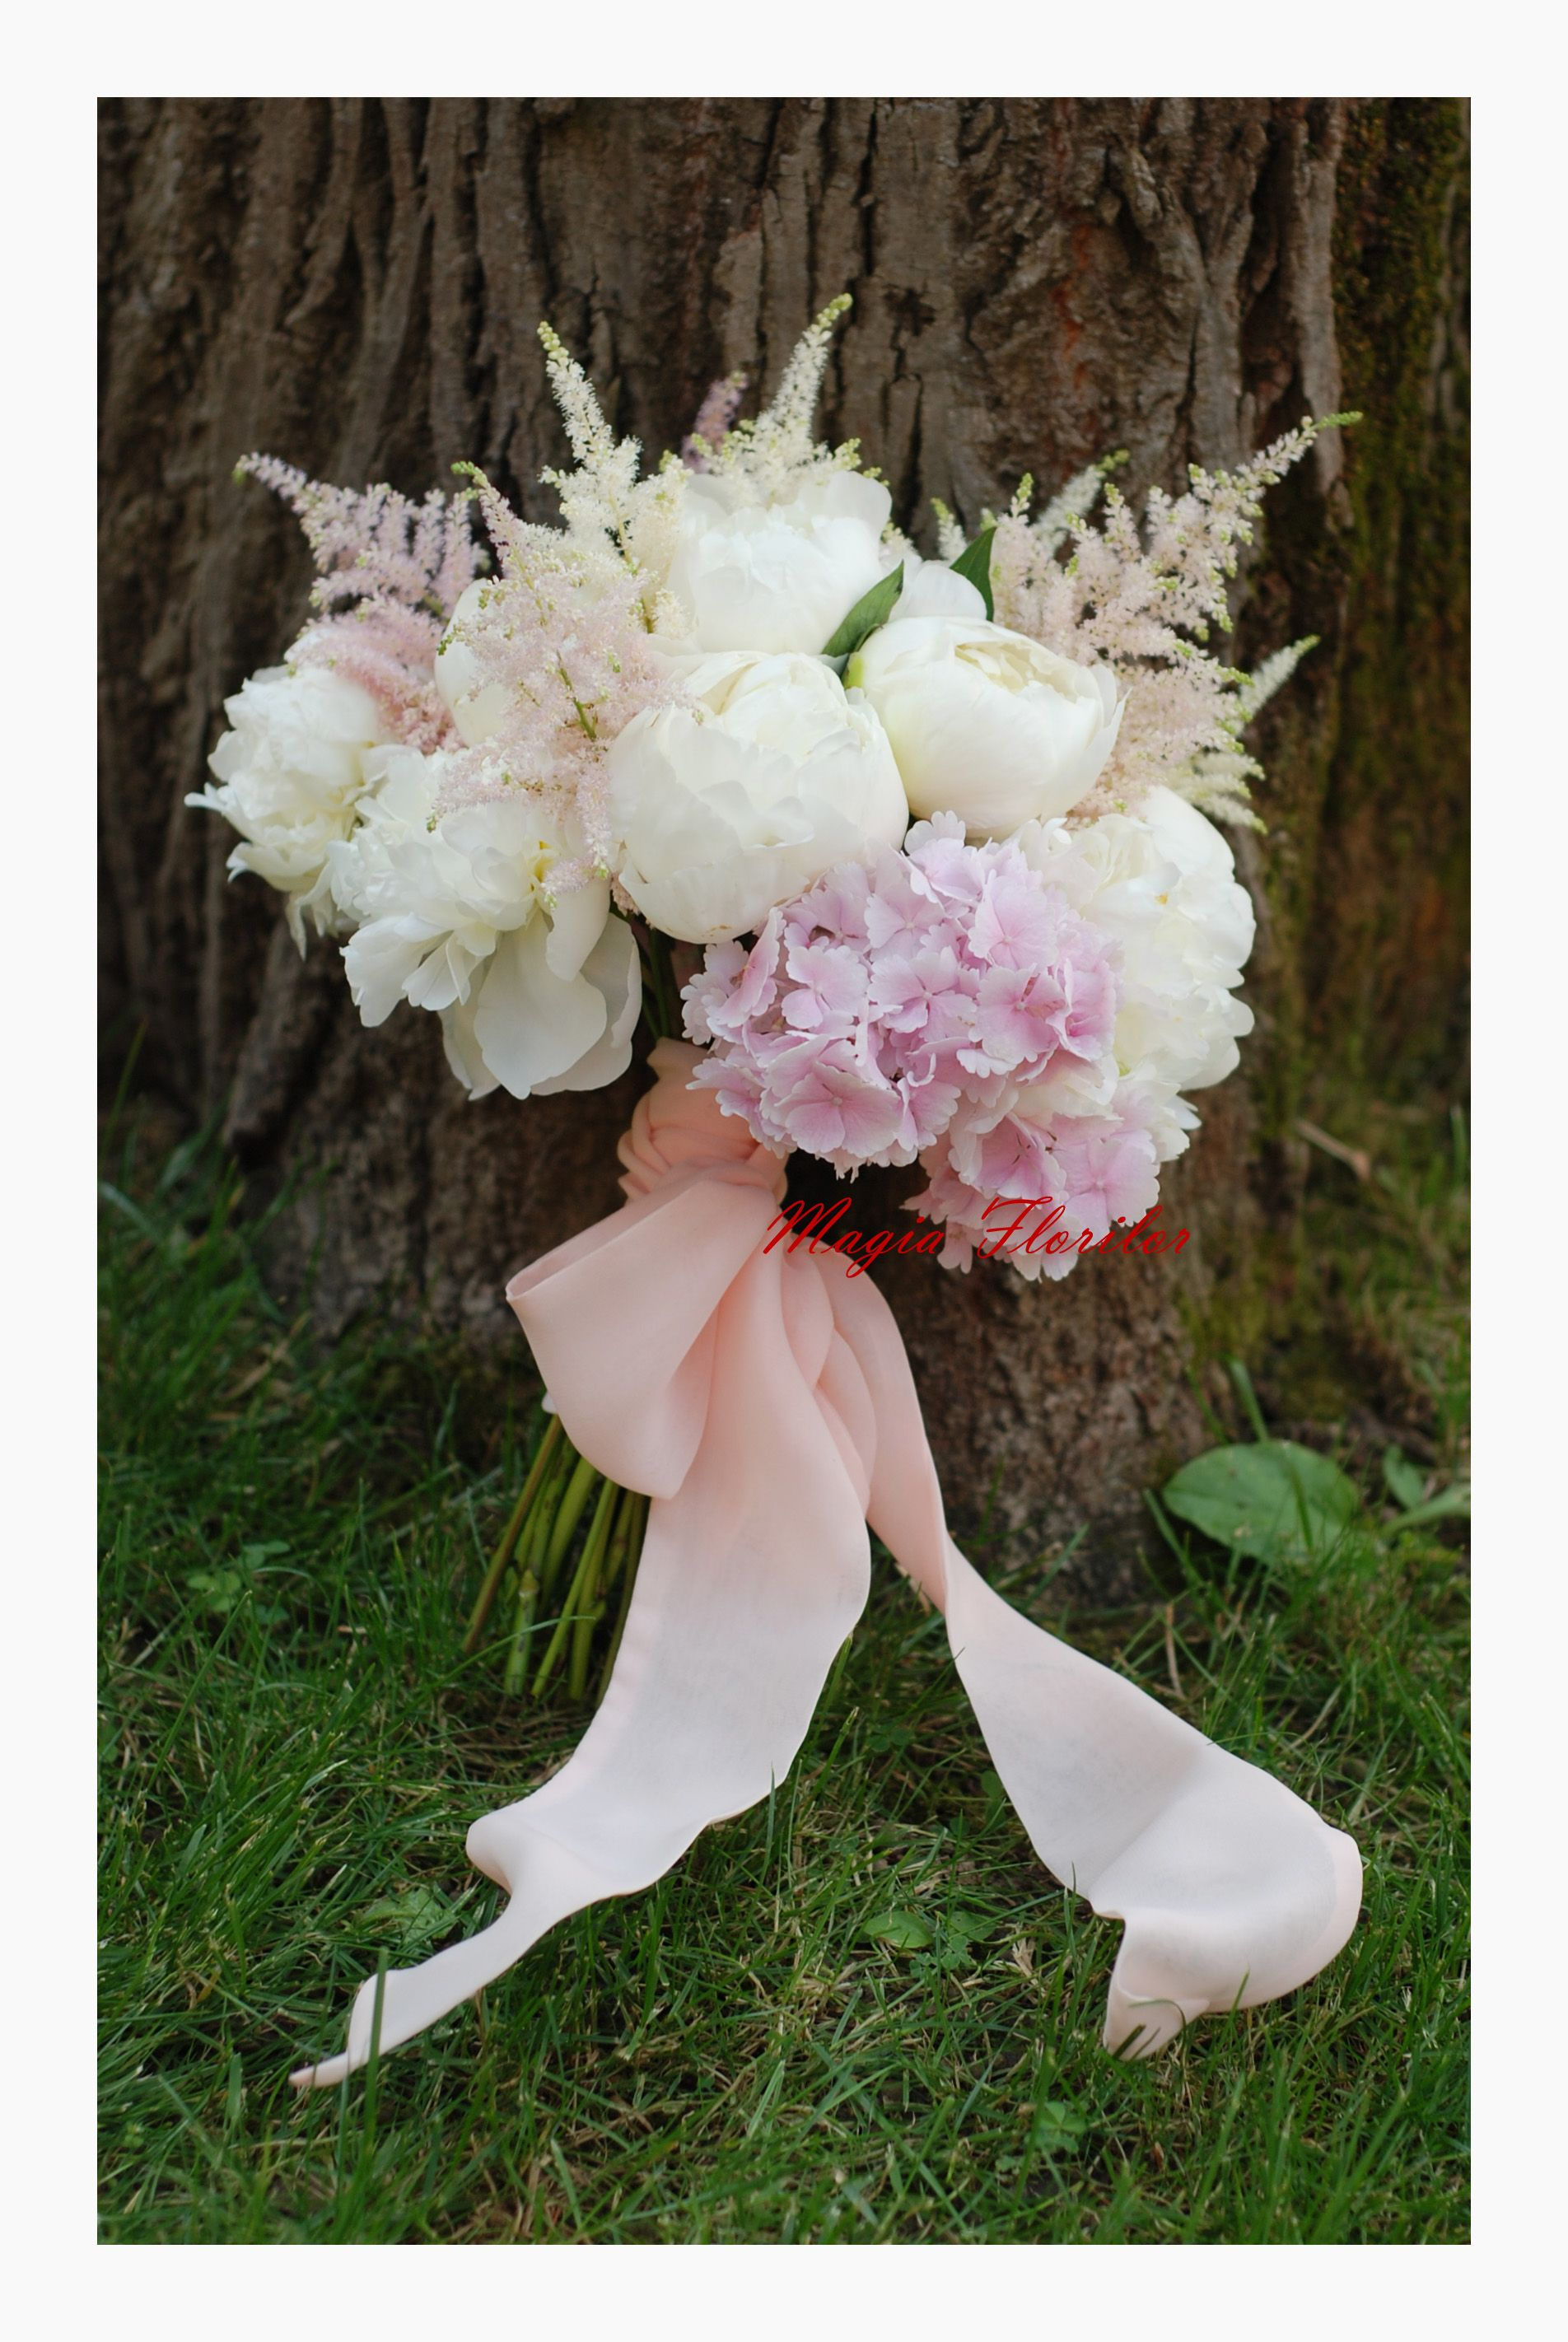 Perfection! White peonies, astilbe and pink hydrangea.